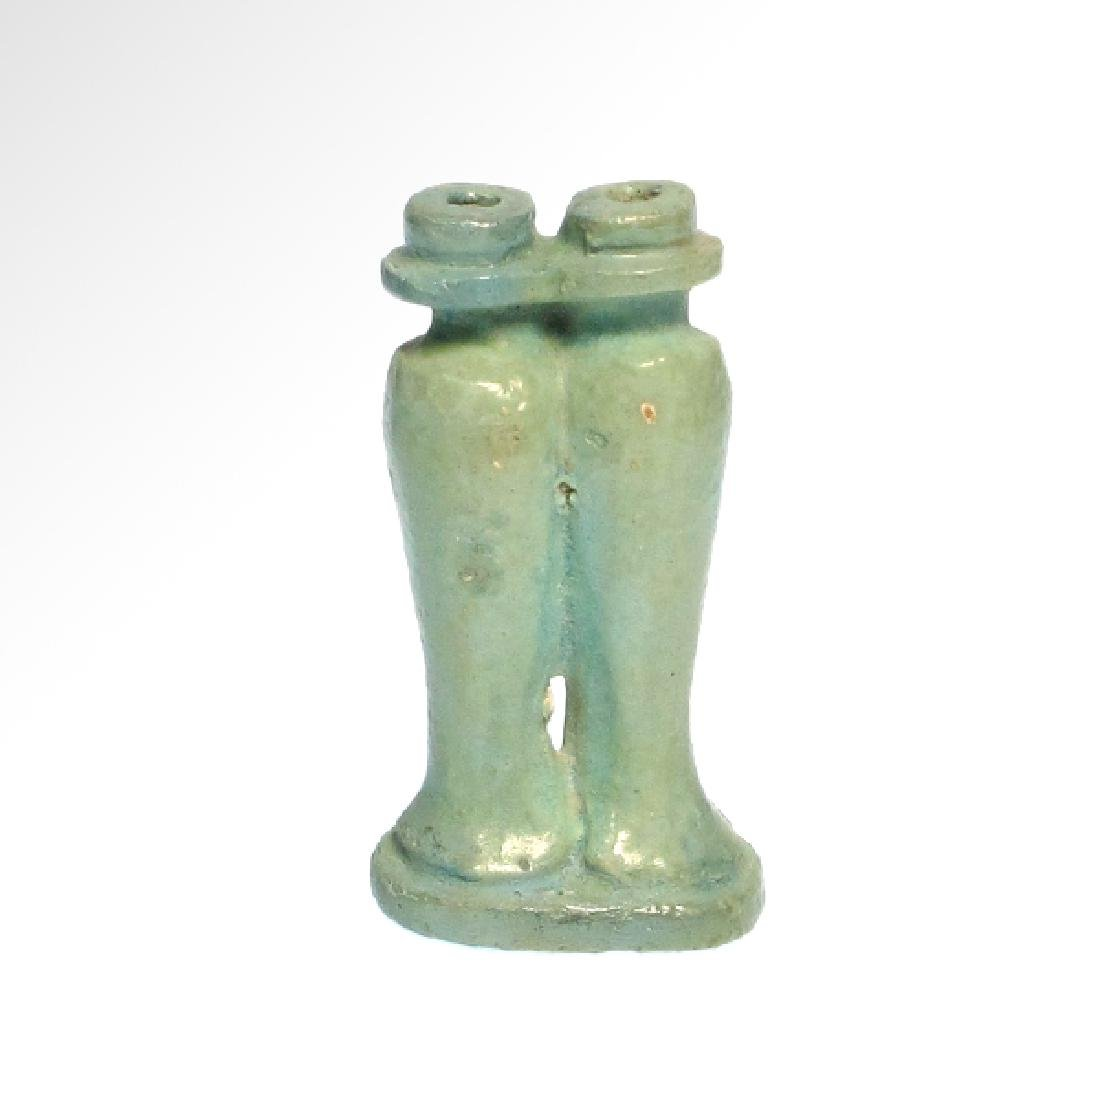 Small Egyptian Cosmetic Double Vessel, c. 600 B.C. - 3